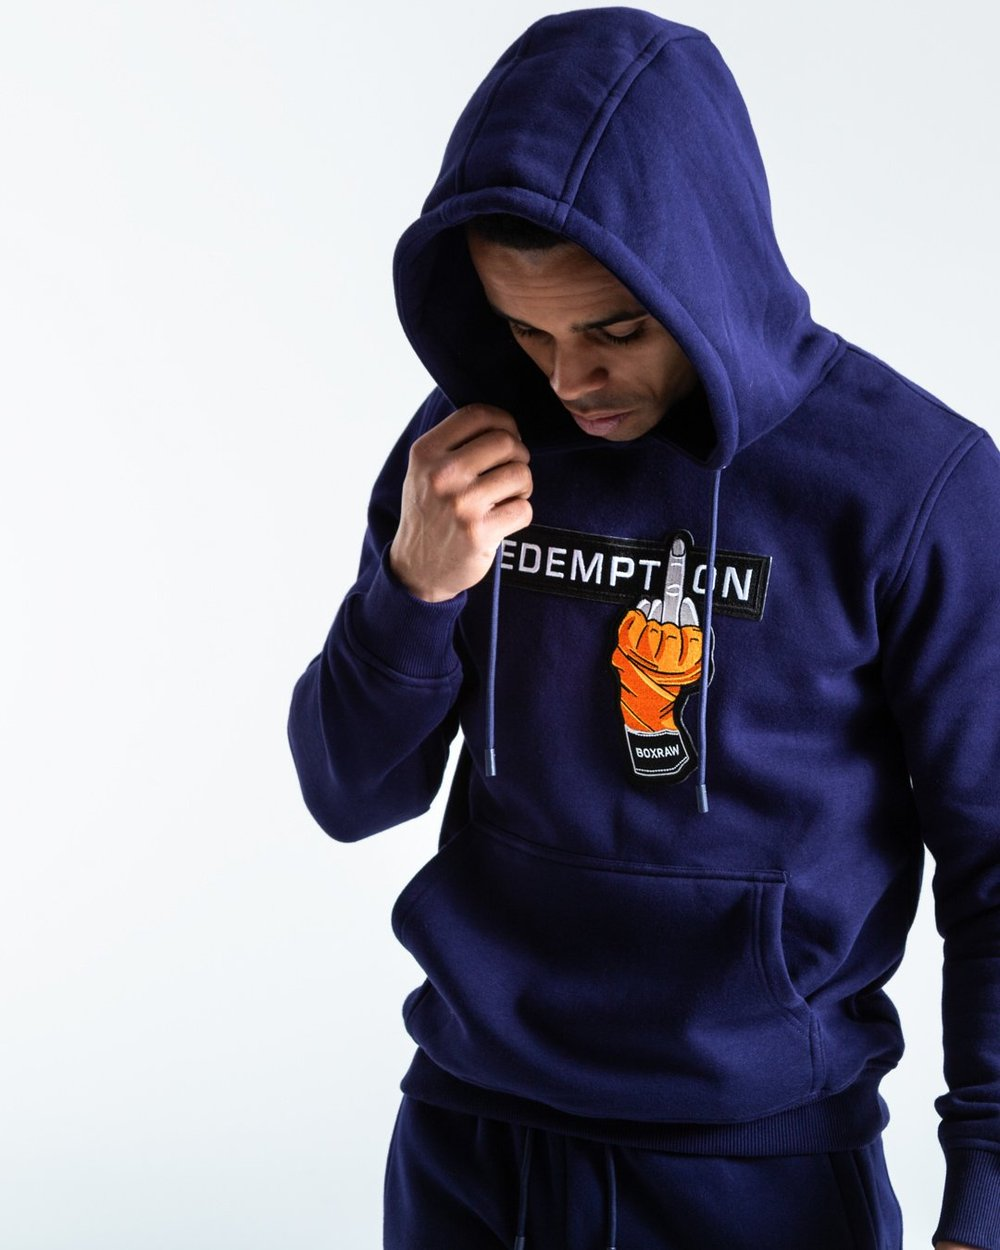 REDEMPTION HOODIE - NAVY - Pandemic Fight Gear Inc.